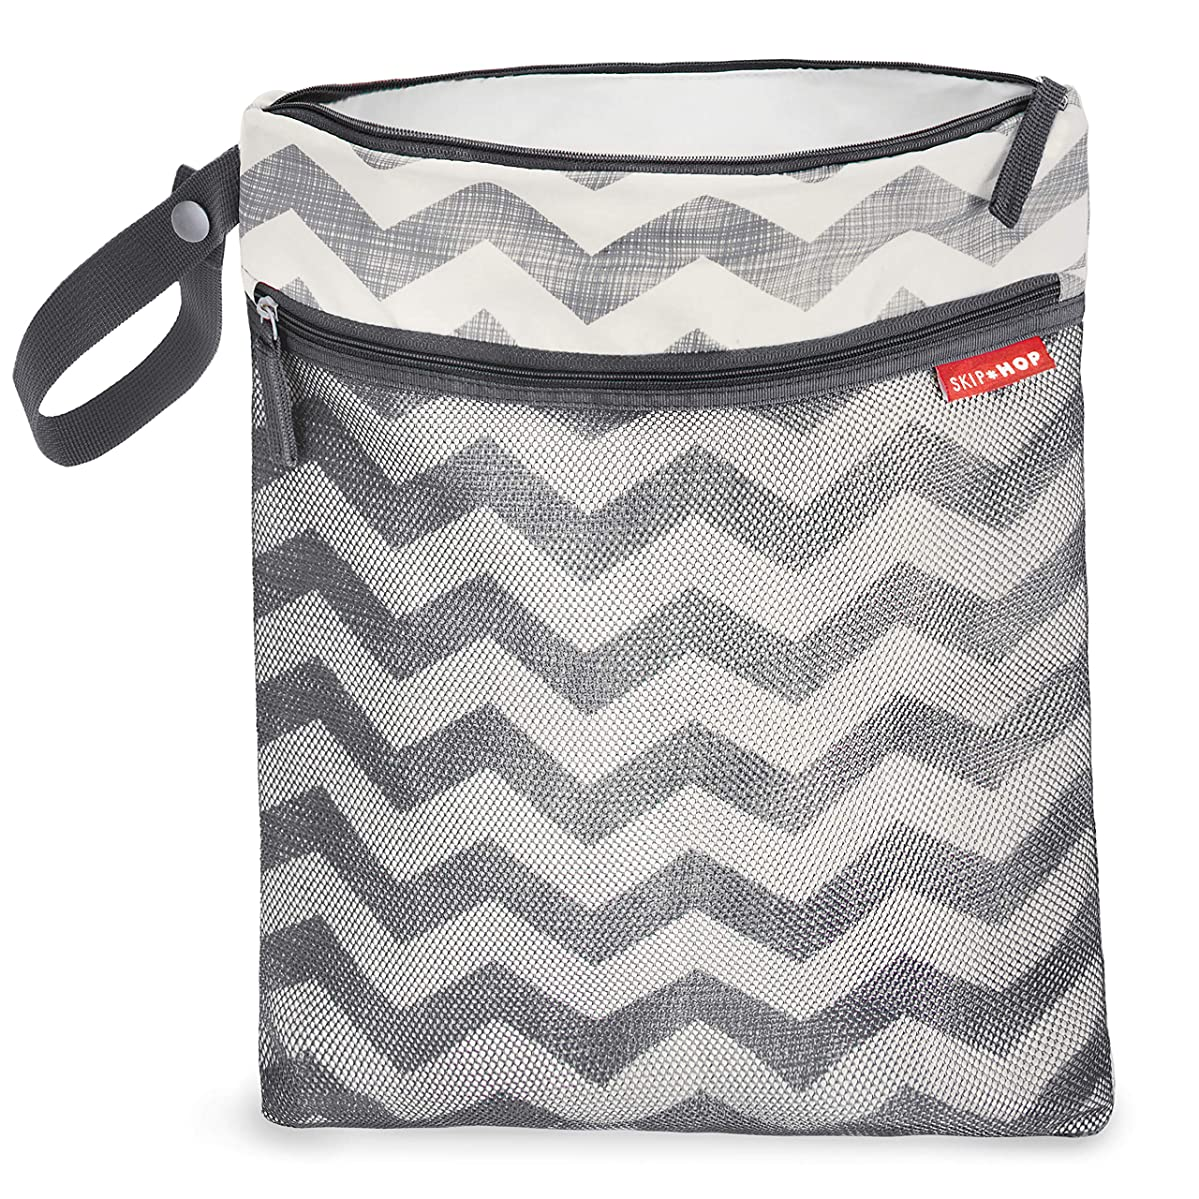 Skip Hop Waterproof Wet Dry Bag, Grab & Go, Chevron